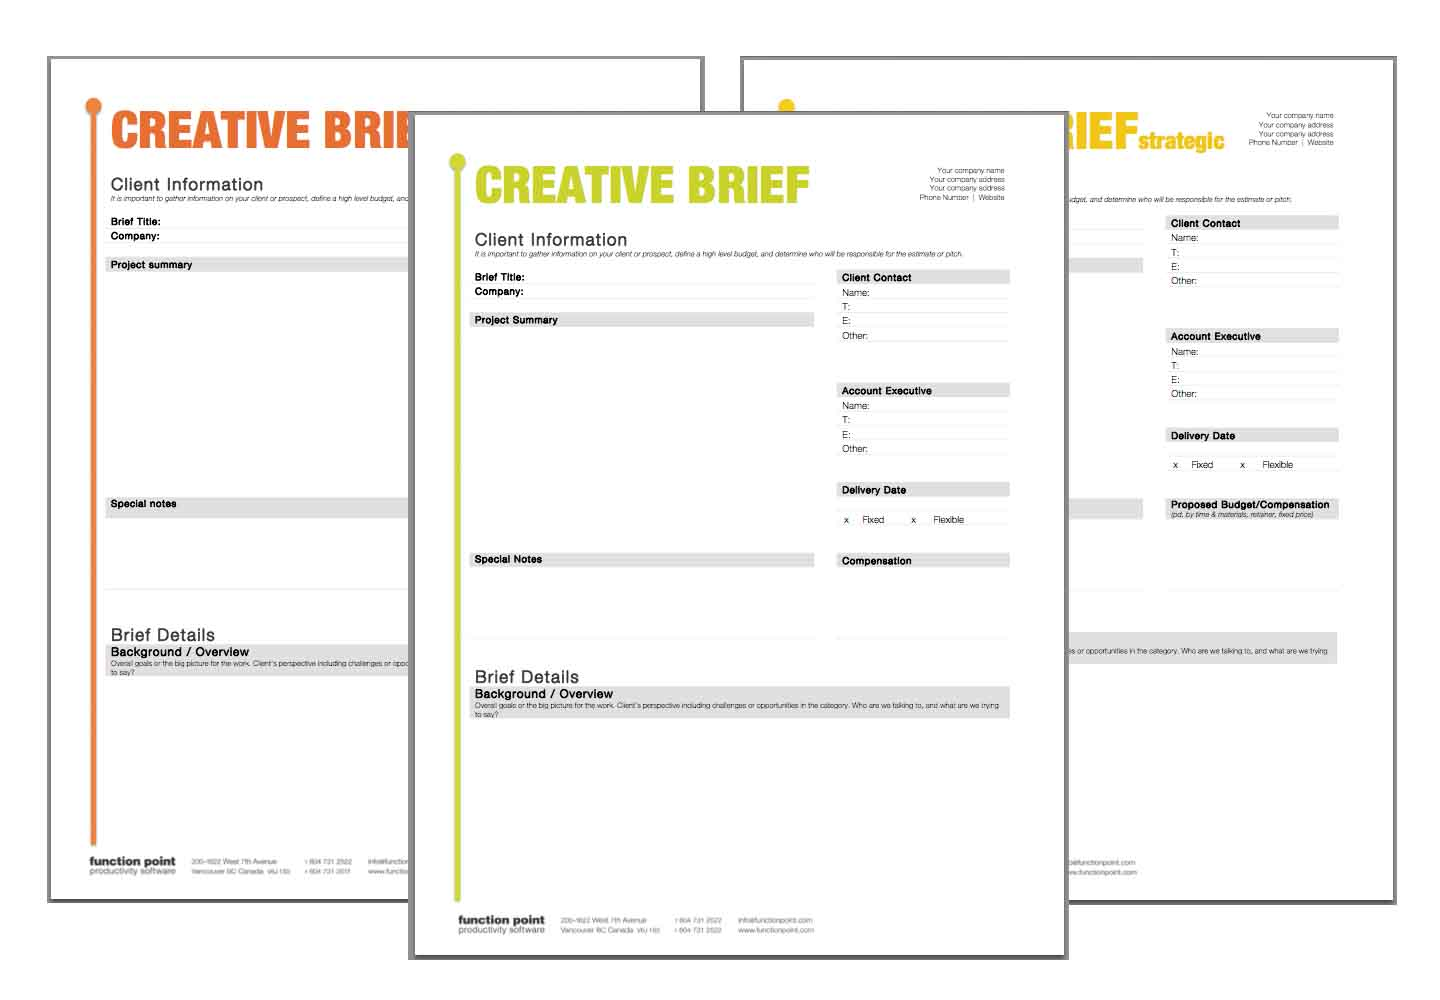 Creative Agency Project Management Template, Social Media Tracking